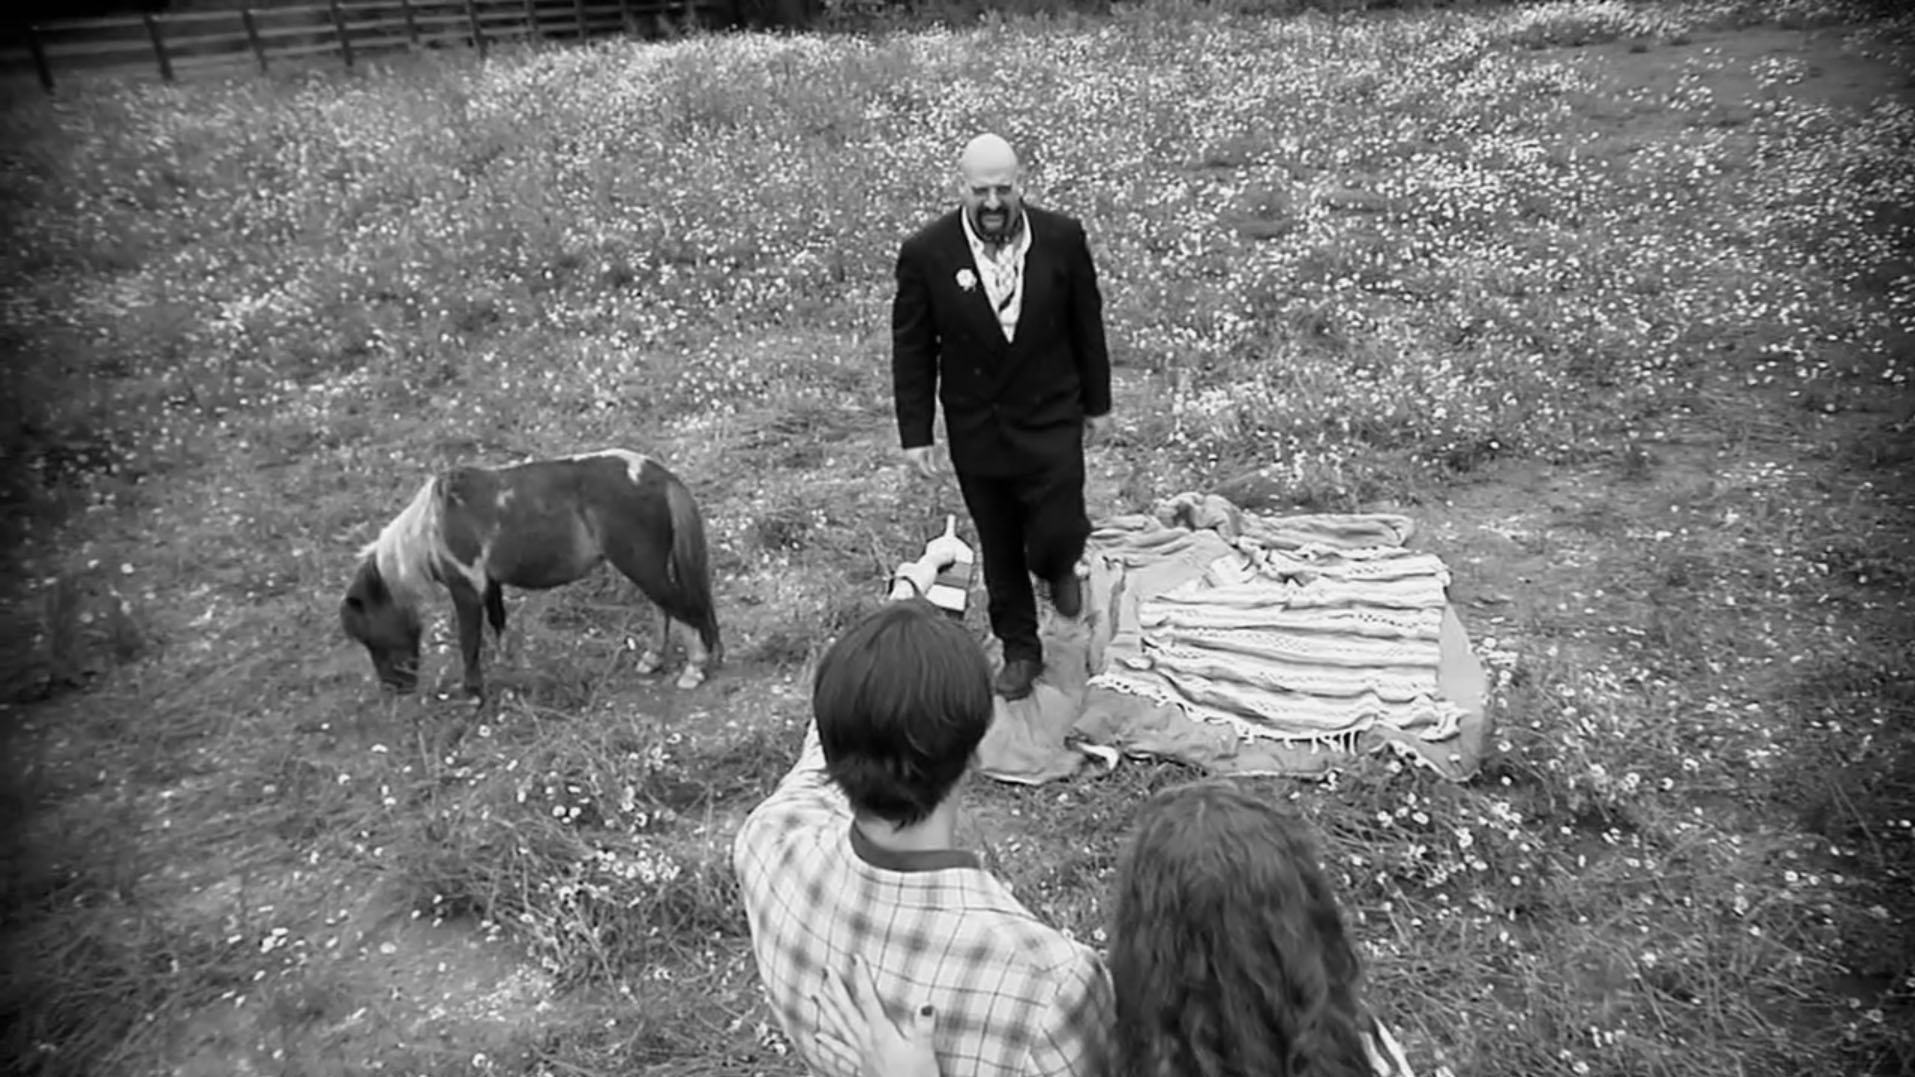 Image from the short film The Adventures of Martin Dockery